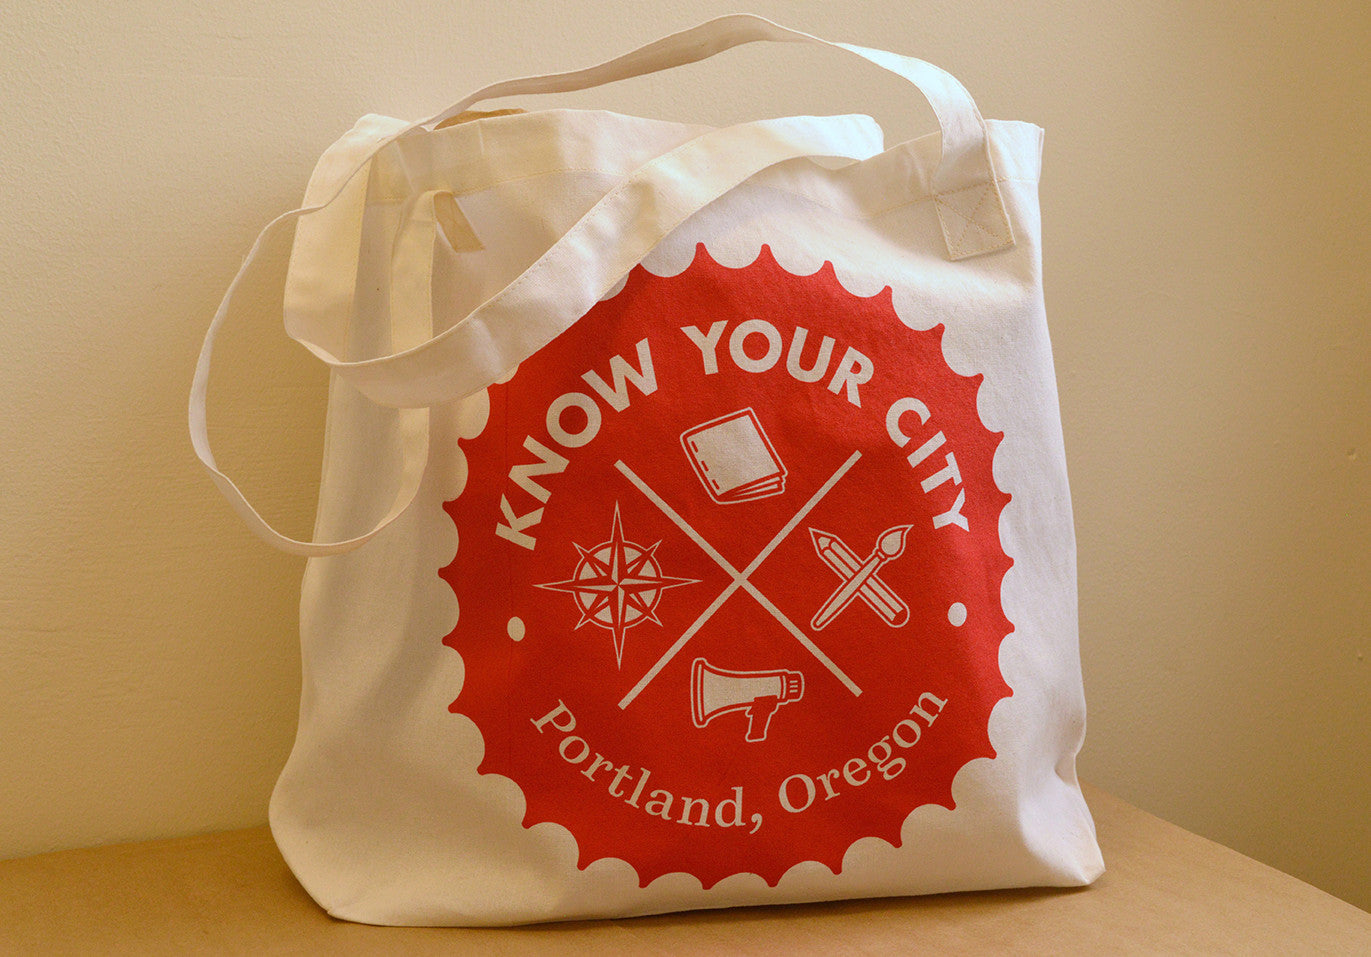 Know Your City tote bag